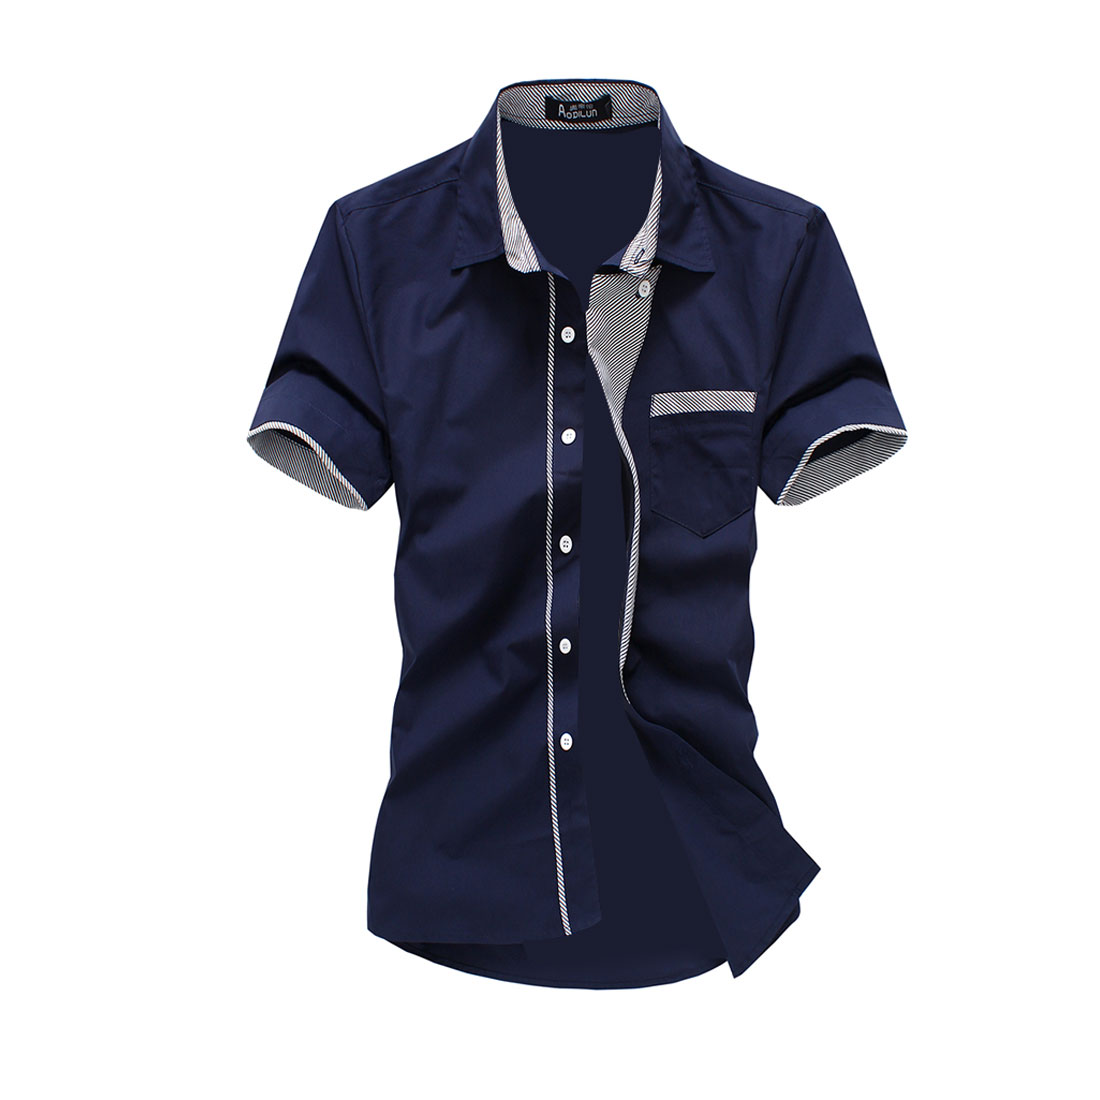 Men Button Closure Summer Wearing Casual Shirt Navy Blue M